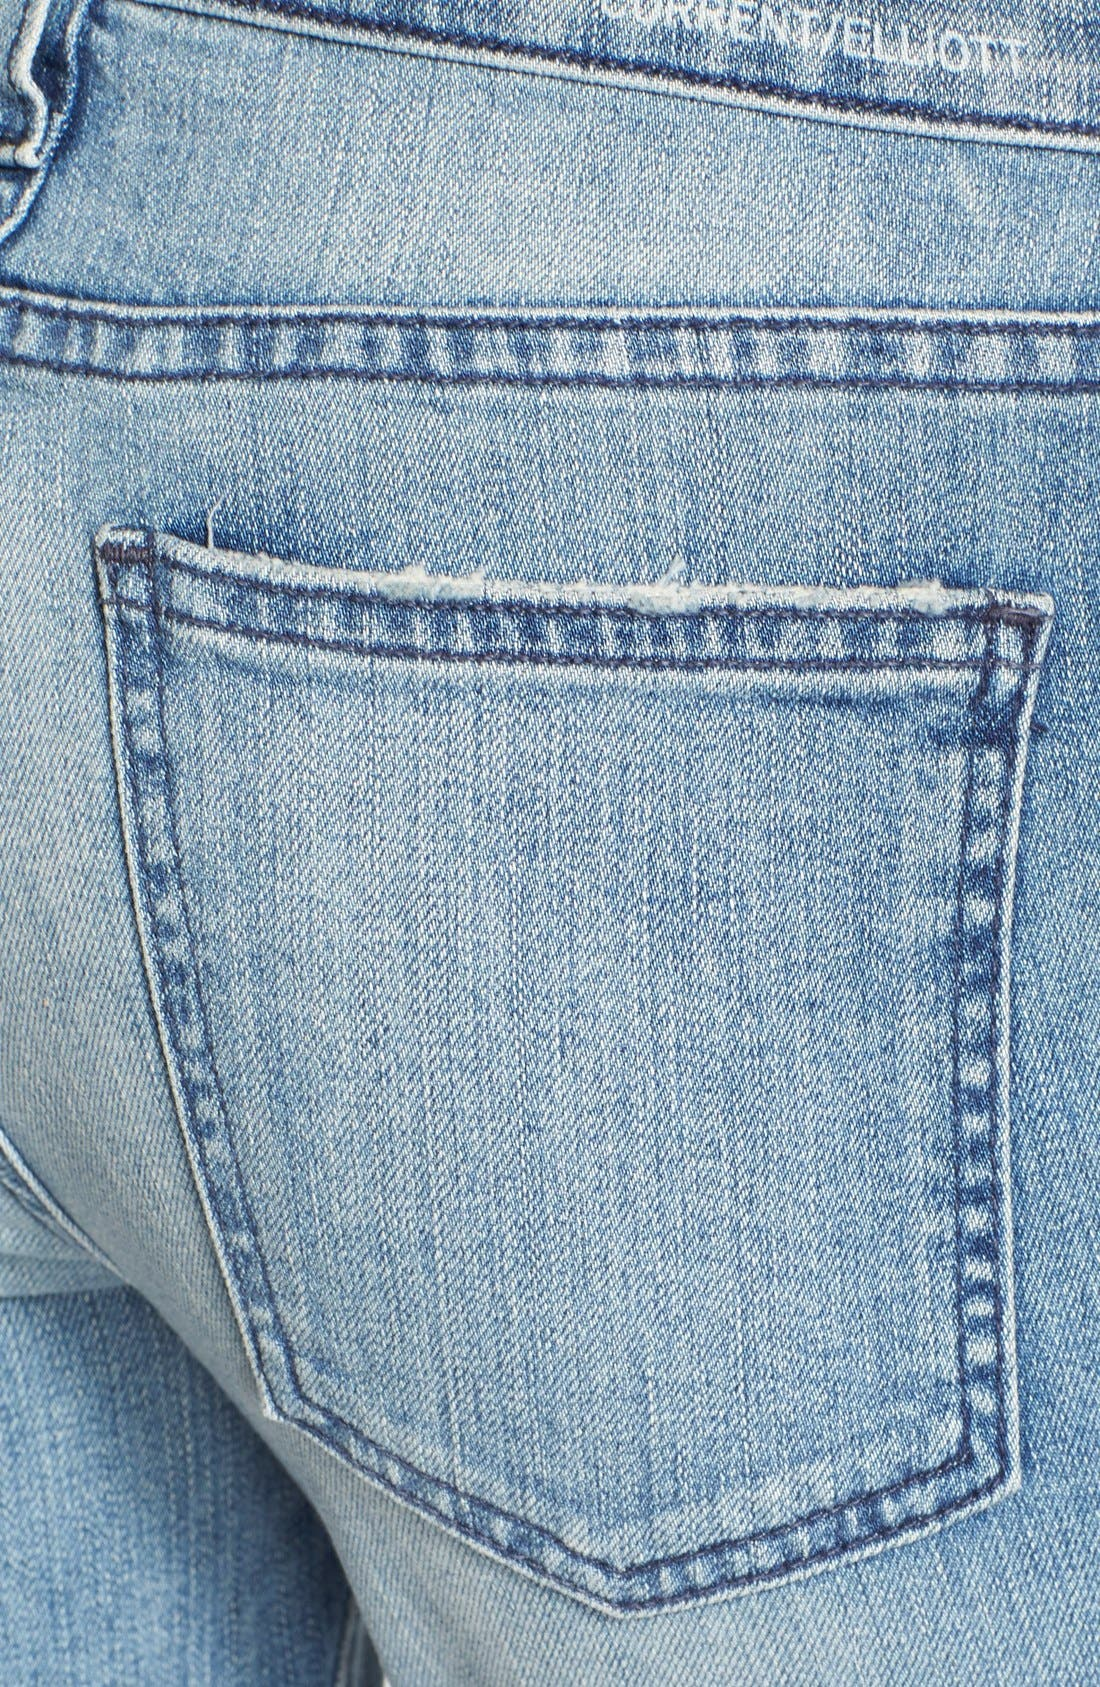 'The Stiletto' Destroyed Skinny Jeans,                             Alternate thumbnail 29, color,